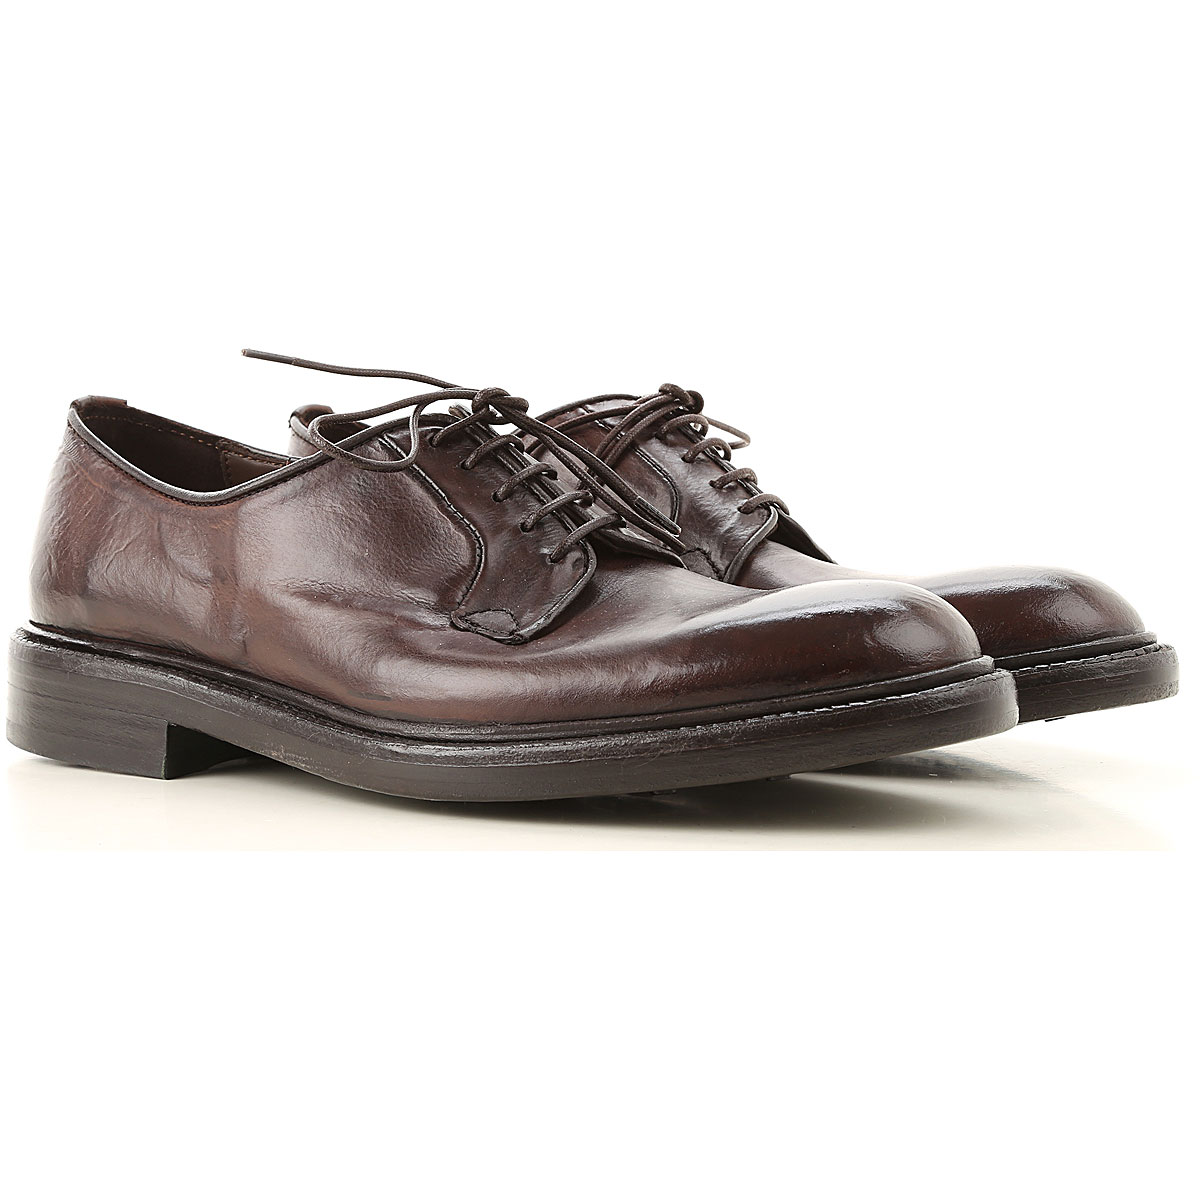 Green George Lace Up Shoes for Men Oxfords, Derbies and Brogues On Sale, Dark Chocolate Brown, Leather, 2019, 10 10.5 12 8 9 9.5